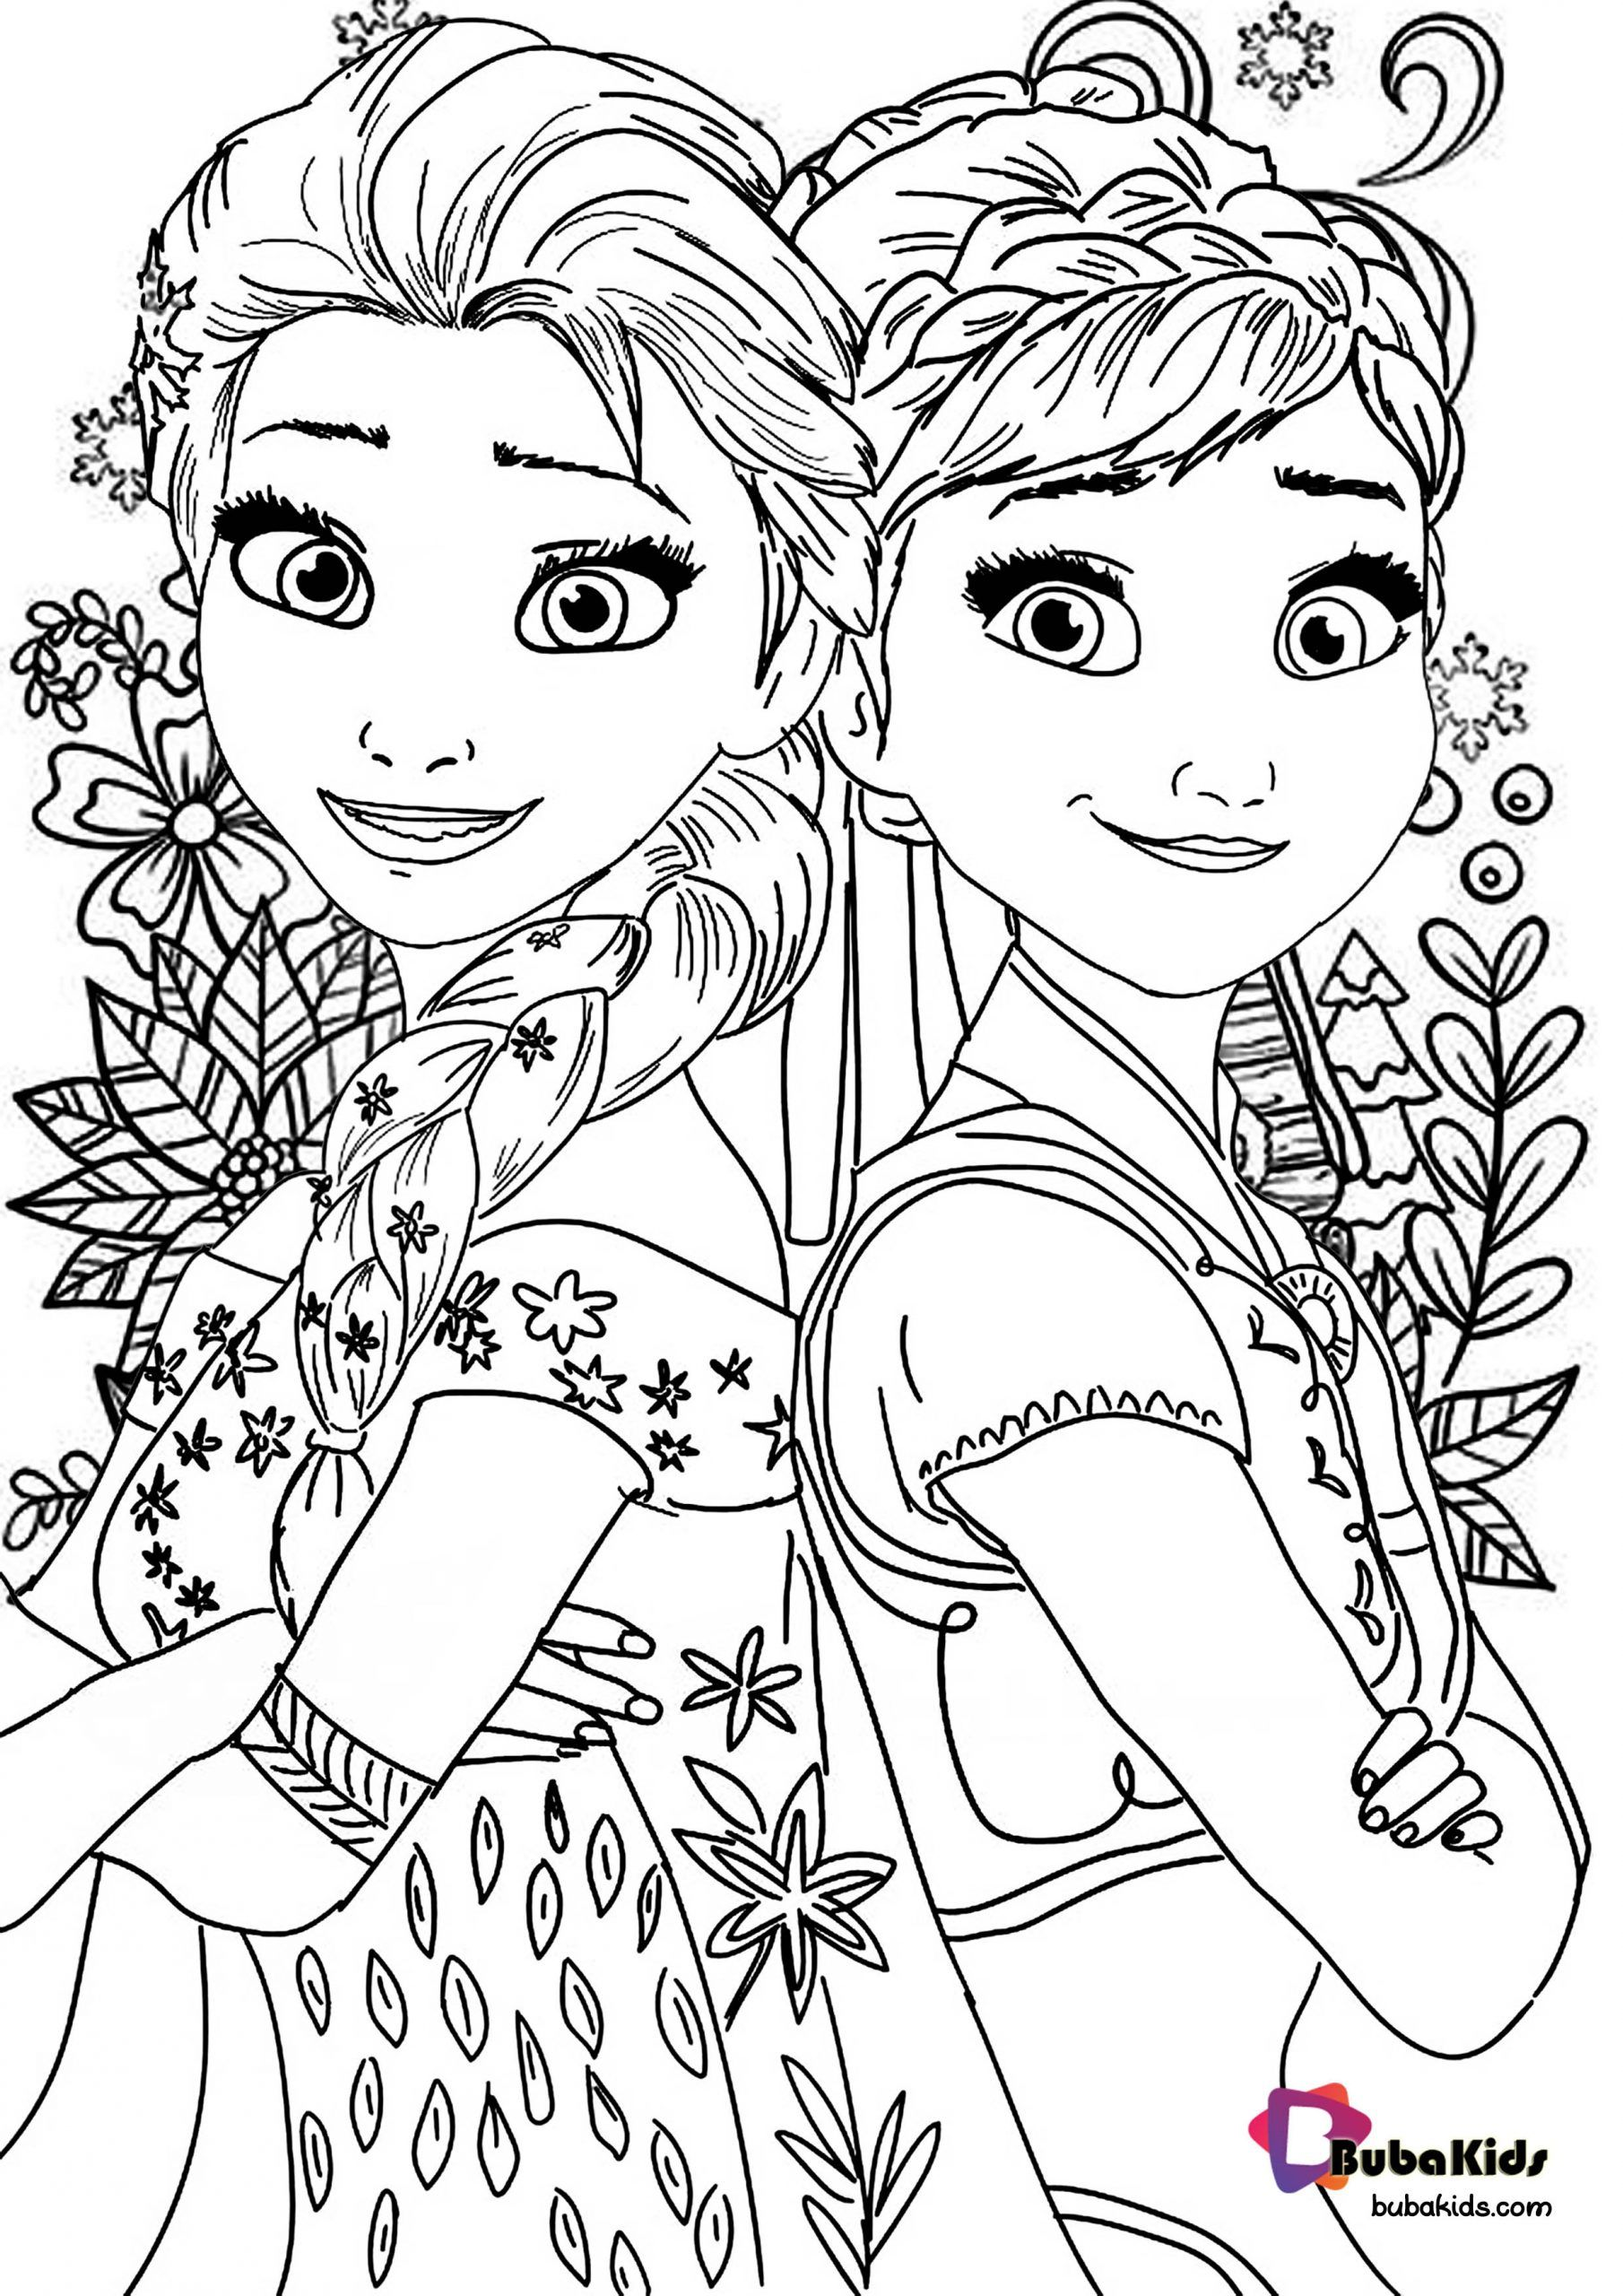 Frozen 2 Coloring Page For Kids Collection Of Cartoon Coloring Pages For Teenage Print Elsa Coloring Pages Disney Coloring Pages Kids Printable Coloring Pages